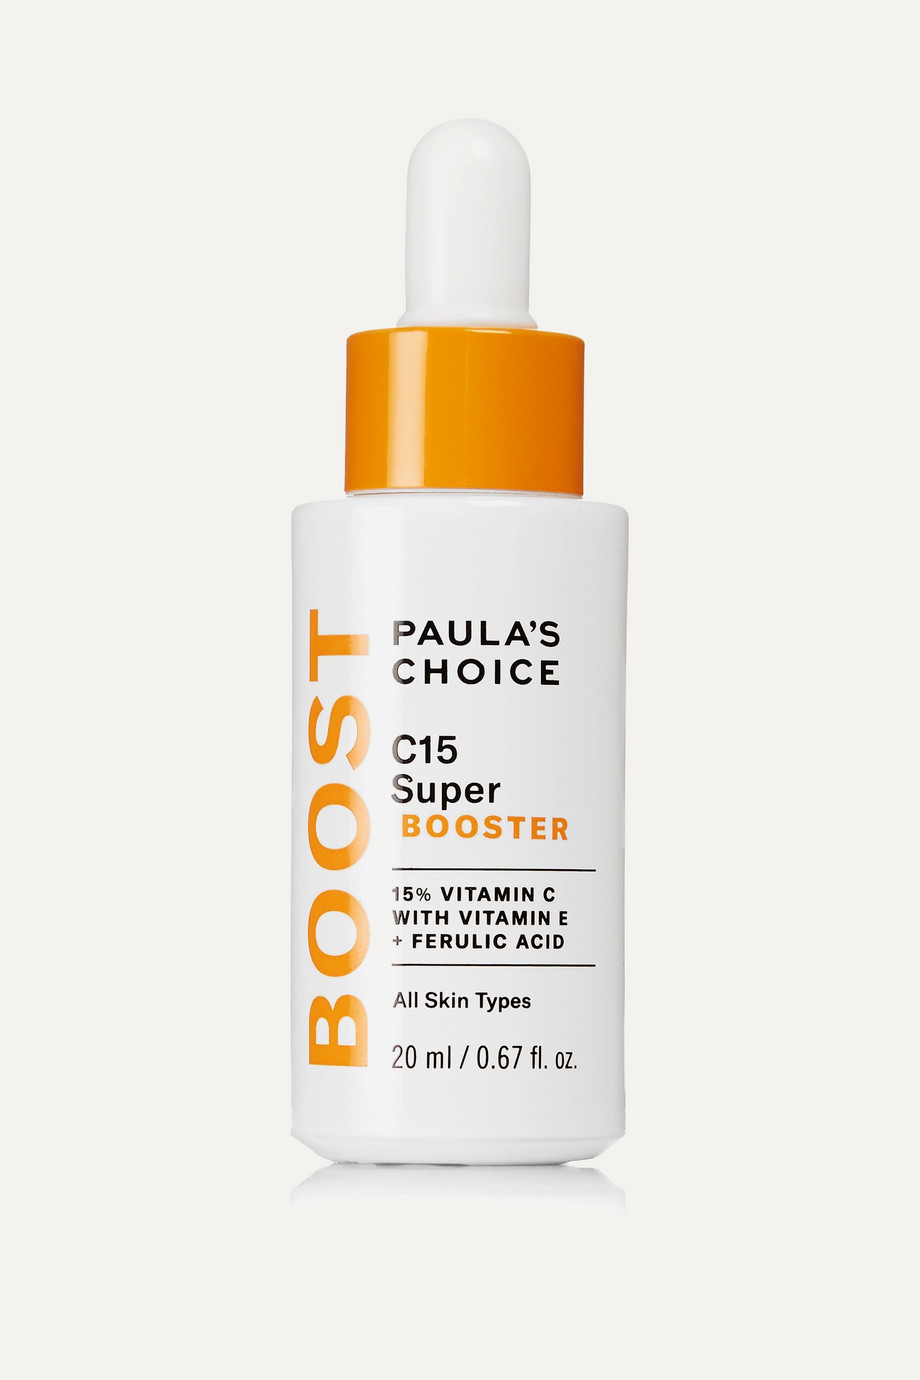 Paula's Choice C15 Super Booster, 20ml